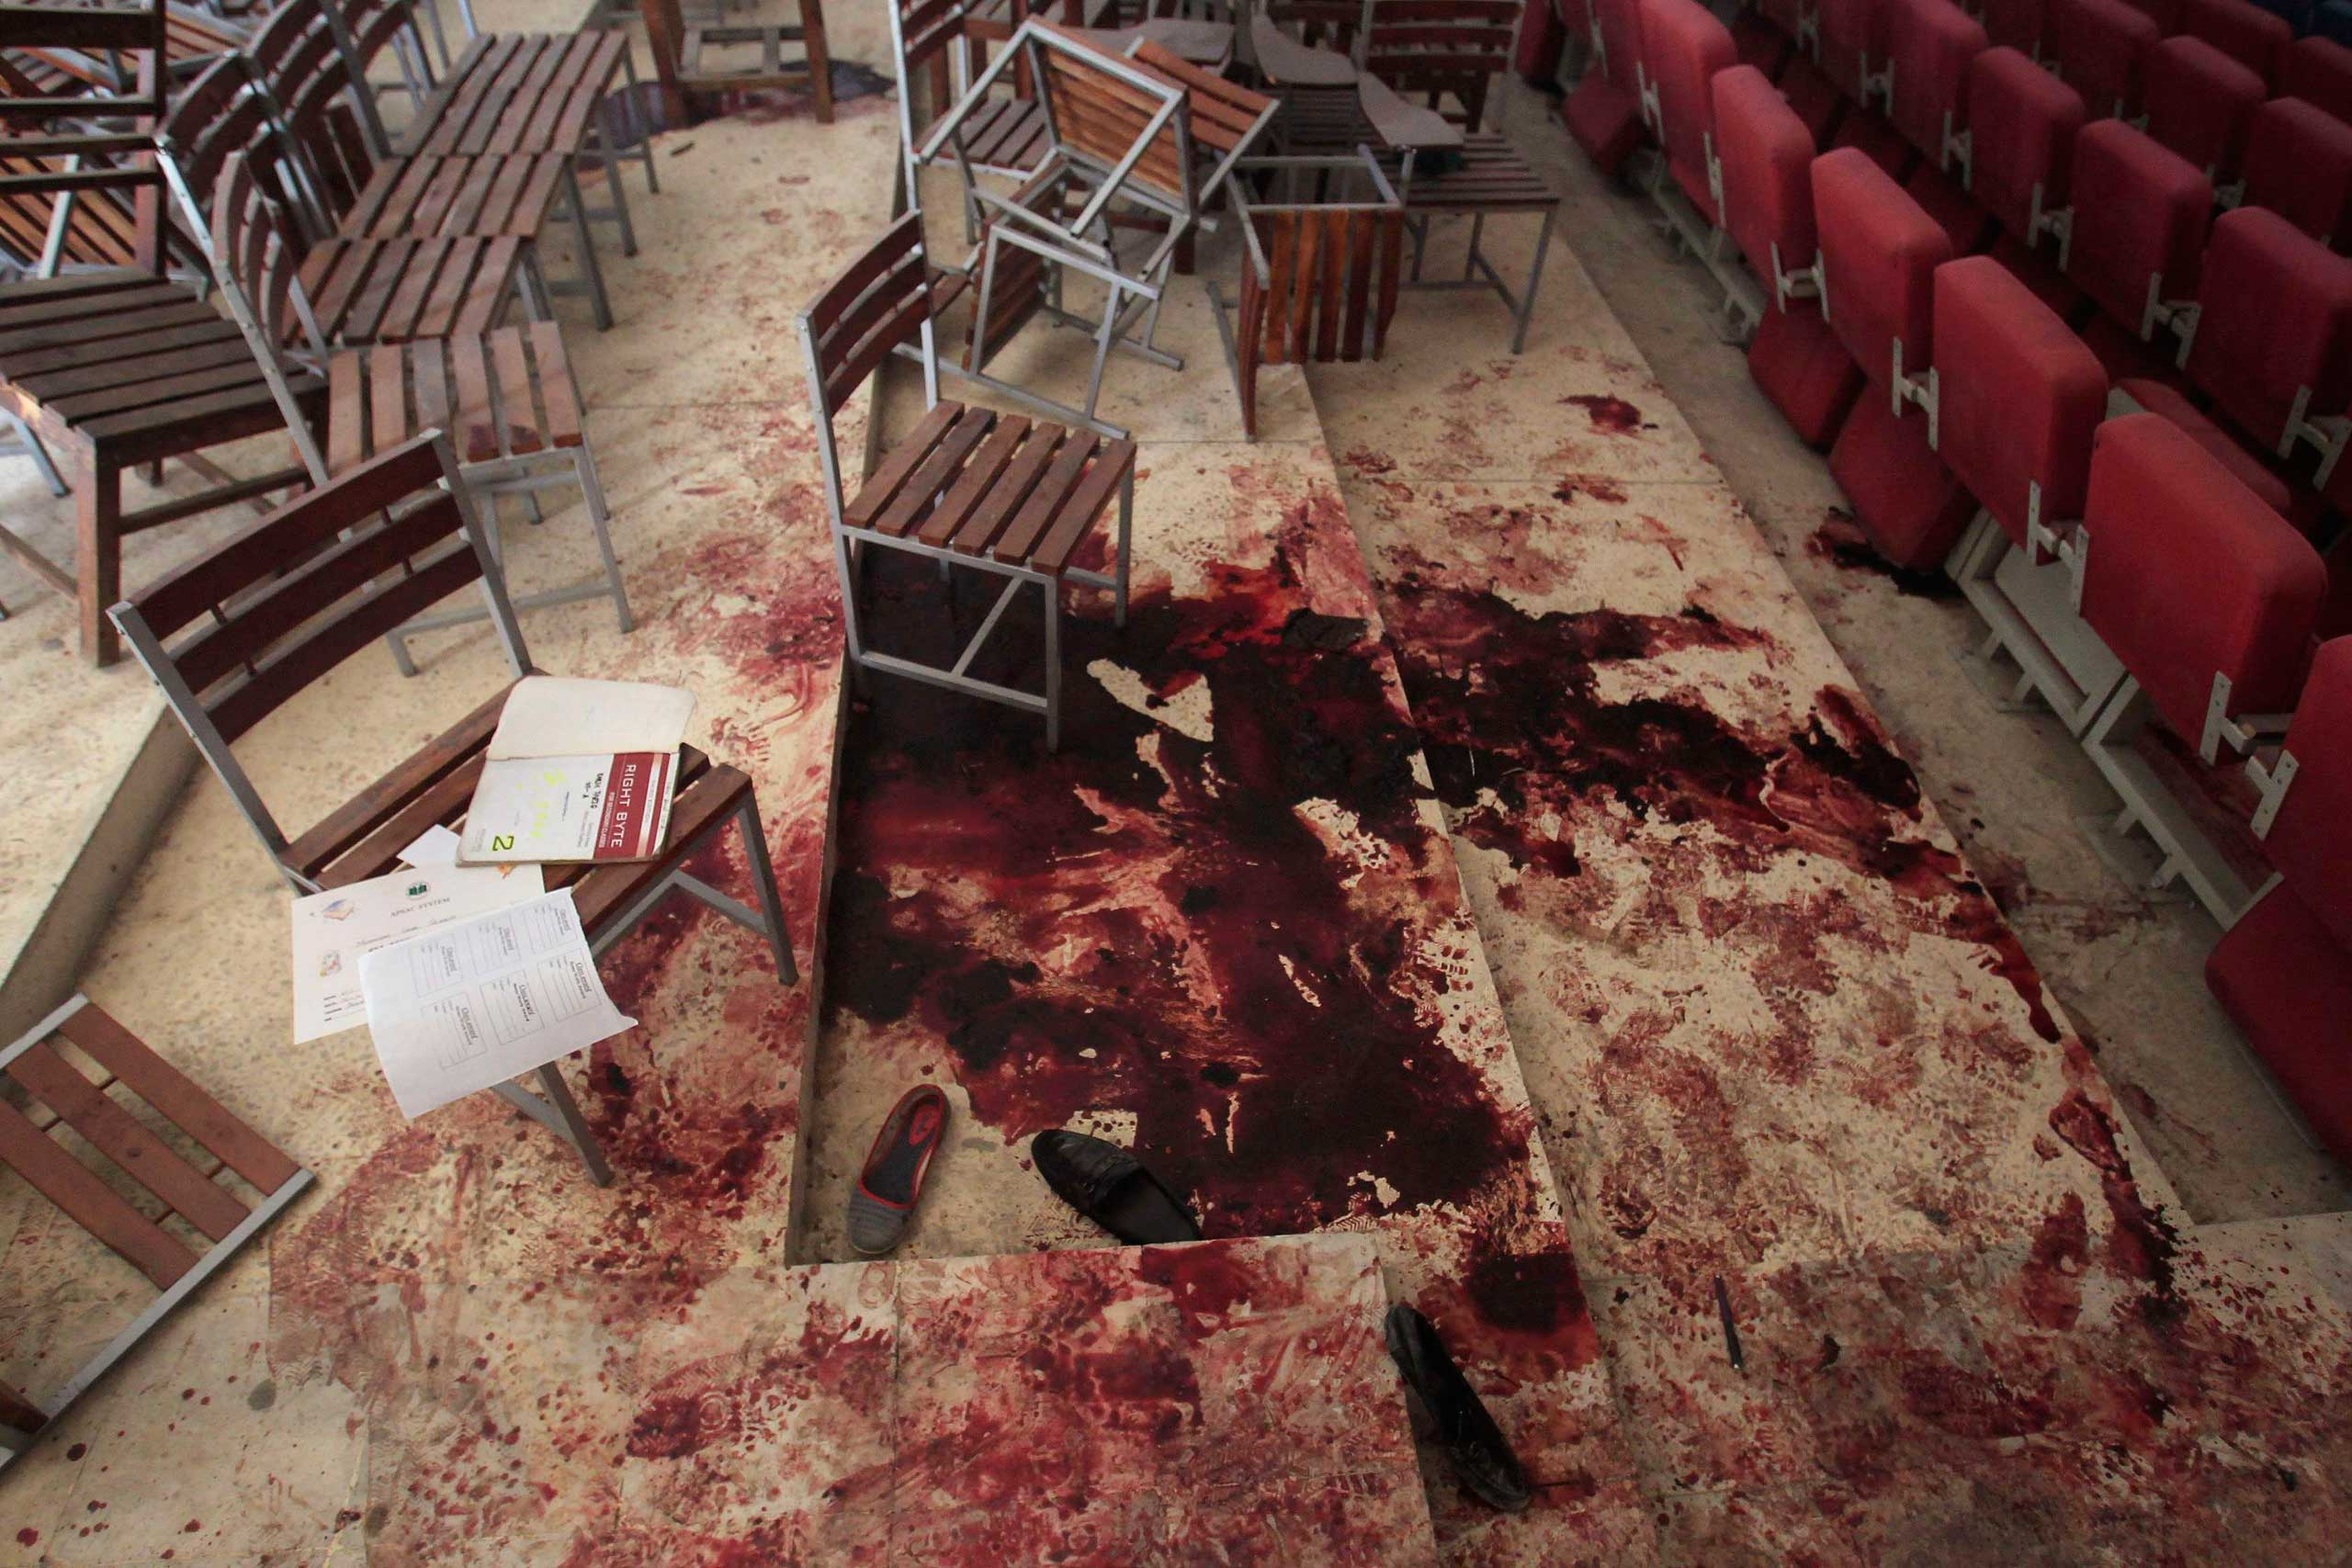 Shoes lie in blood on the auditorium floor at the Army Public School, which was attacked by Taliban gunmen, in Peshawar, Dec. 17, 2014.